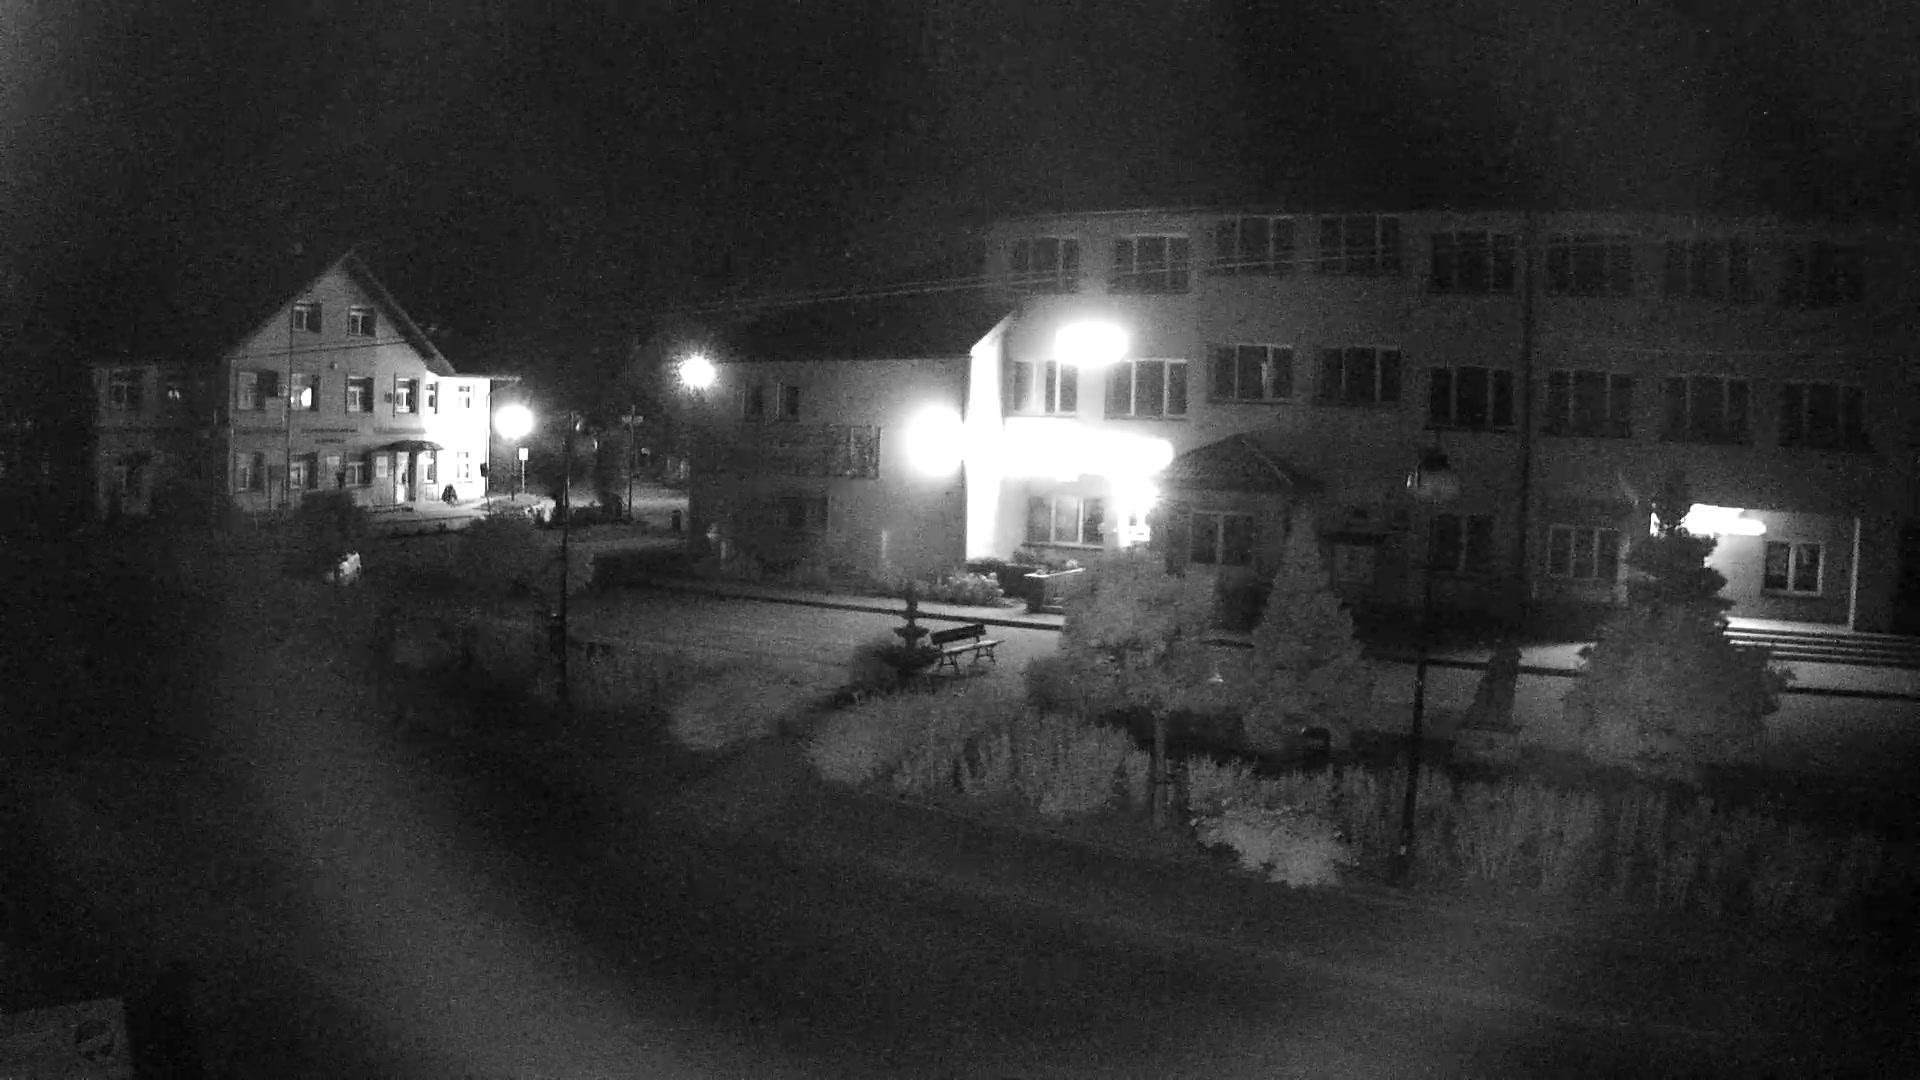 Webcam Jodłowa: Market Square, Dębica